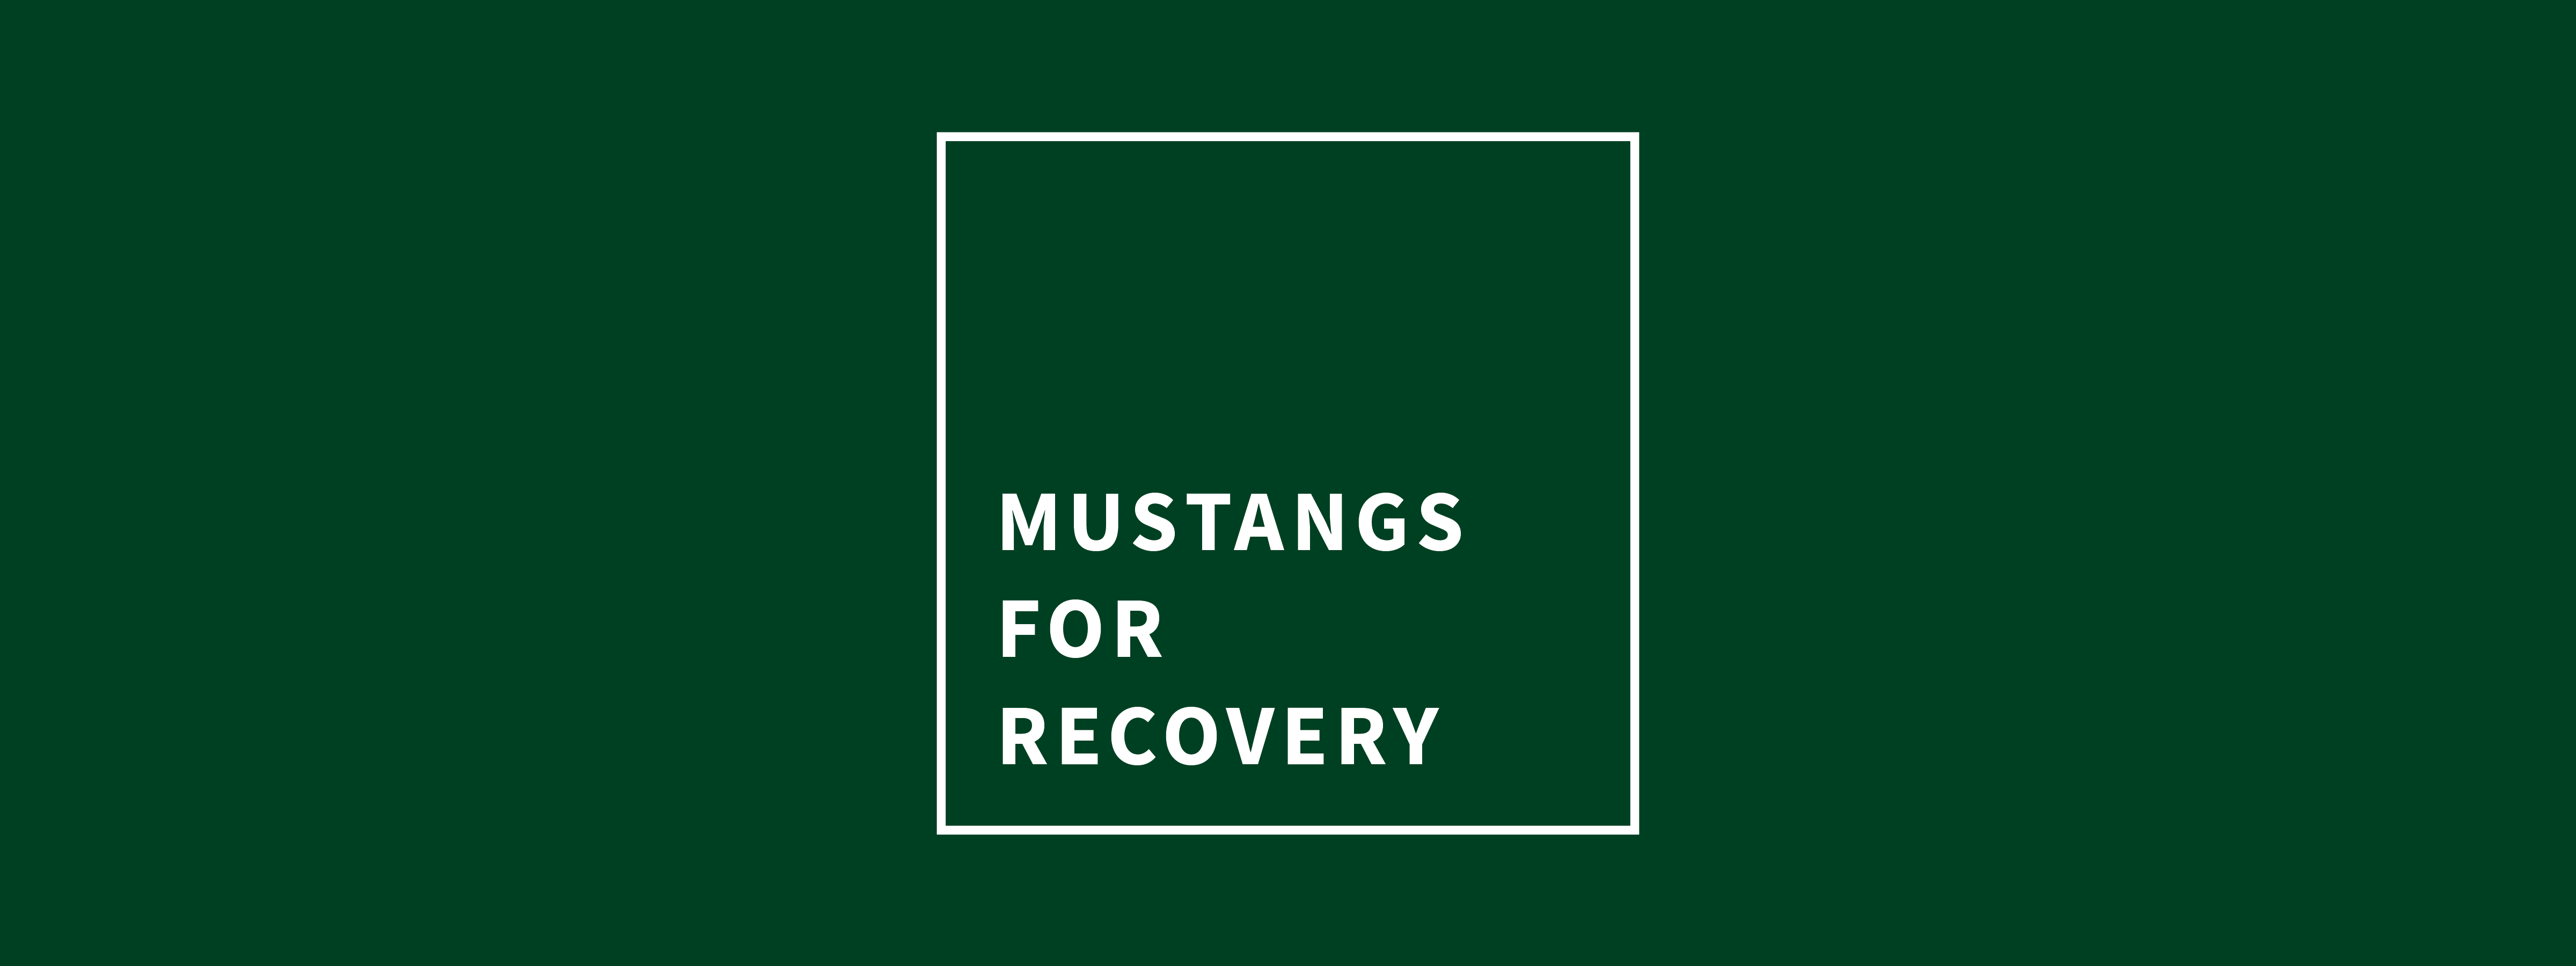 Mustangs for Recovery group name banner